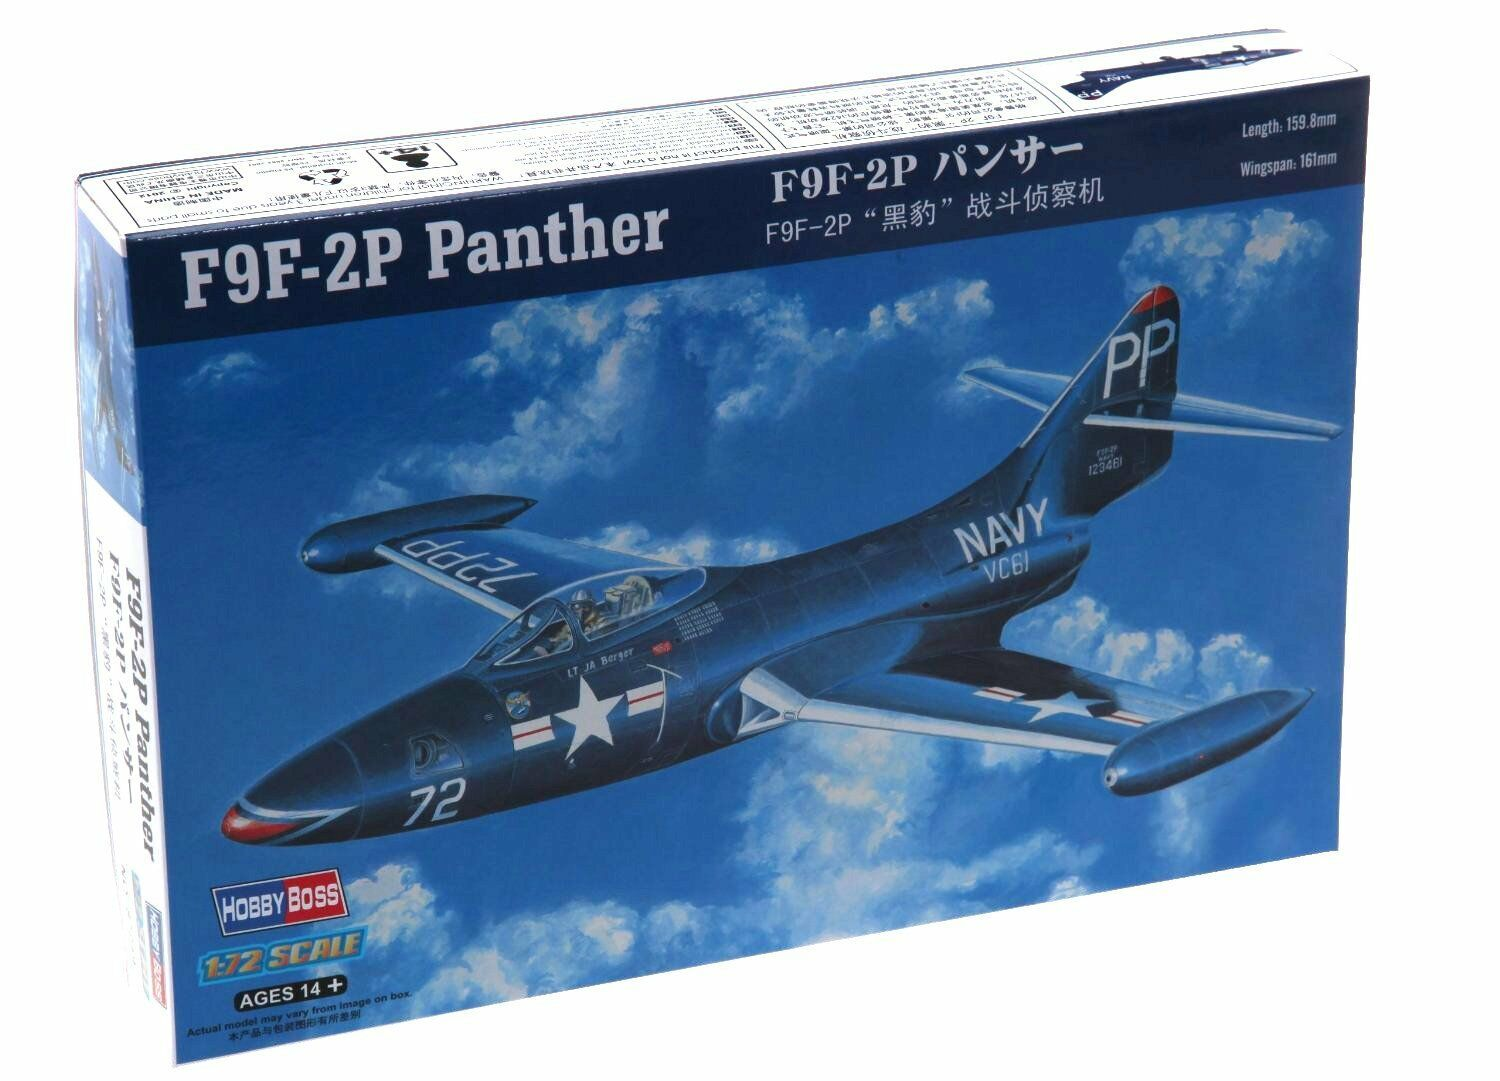 Hobby Boss 87249. Light aircraft F9F-2P Panther Scale 1 72